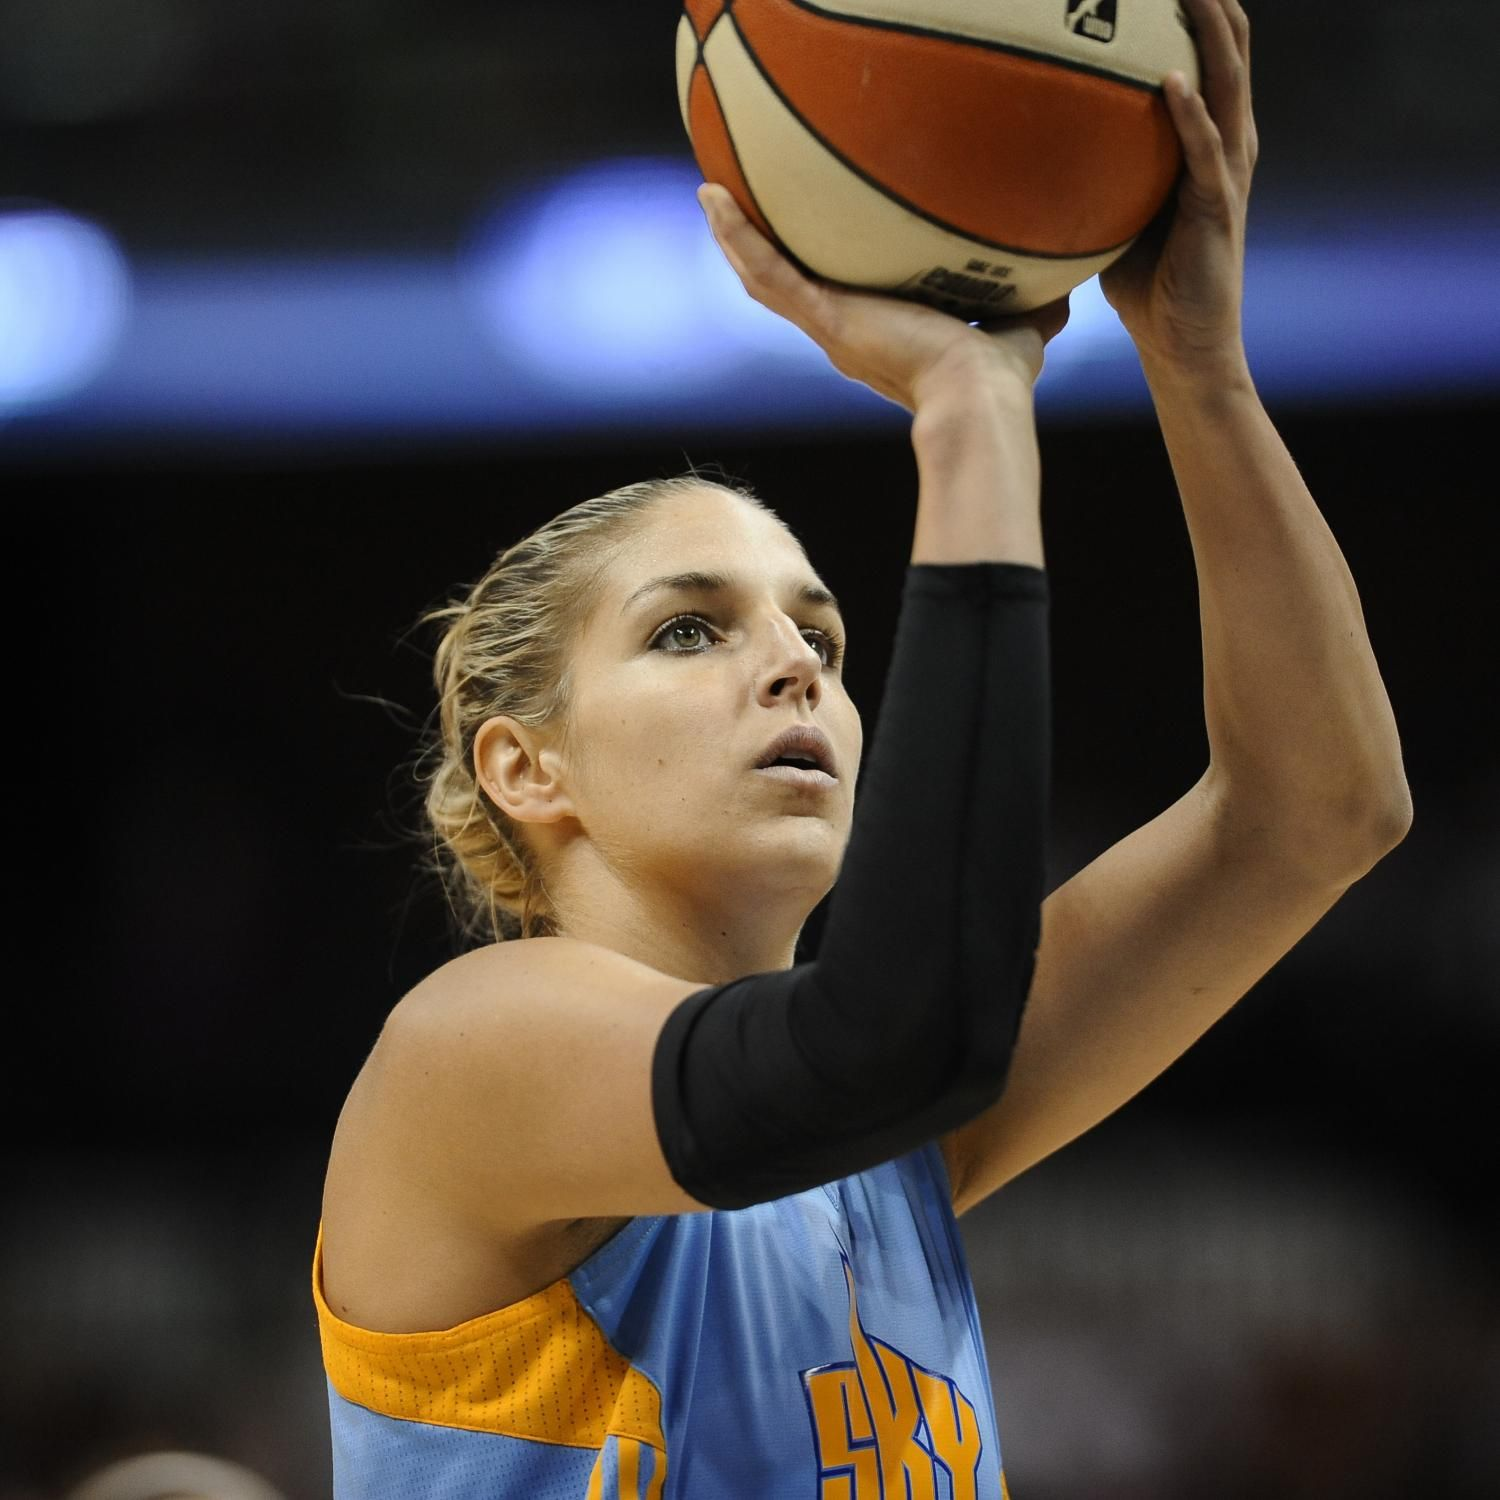 83e27188fa41 ... Celebrity All-Star Game Friday night. Elena Delle Donne s comeback from  a 2014 injury and illness got the ultimate recognition Wednesday.